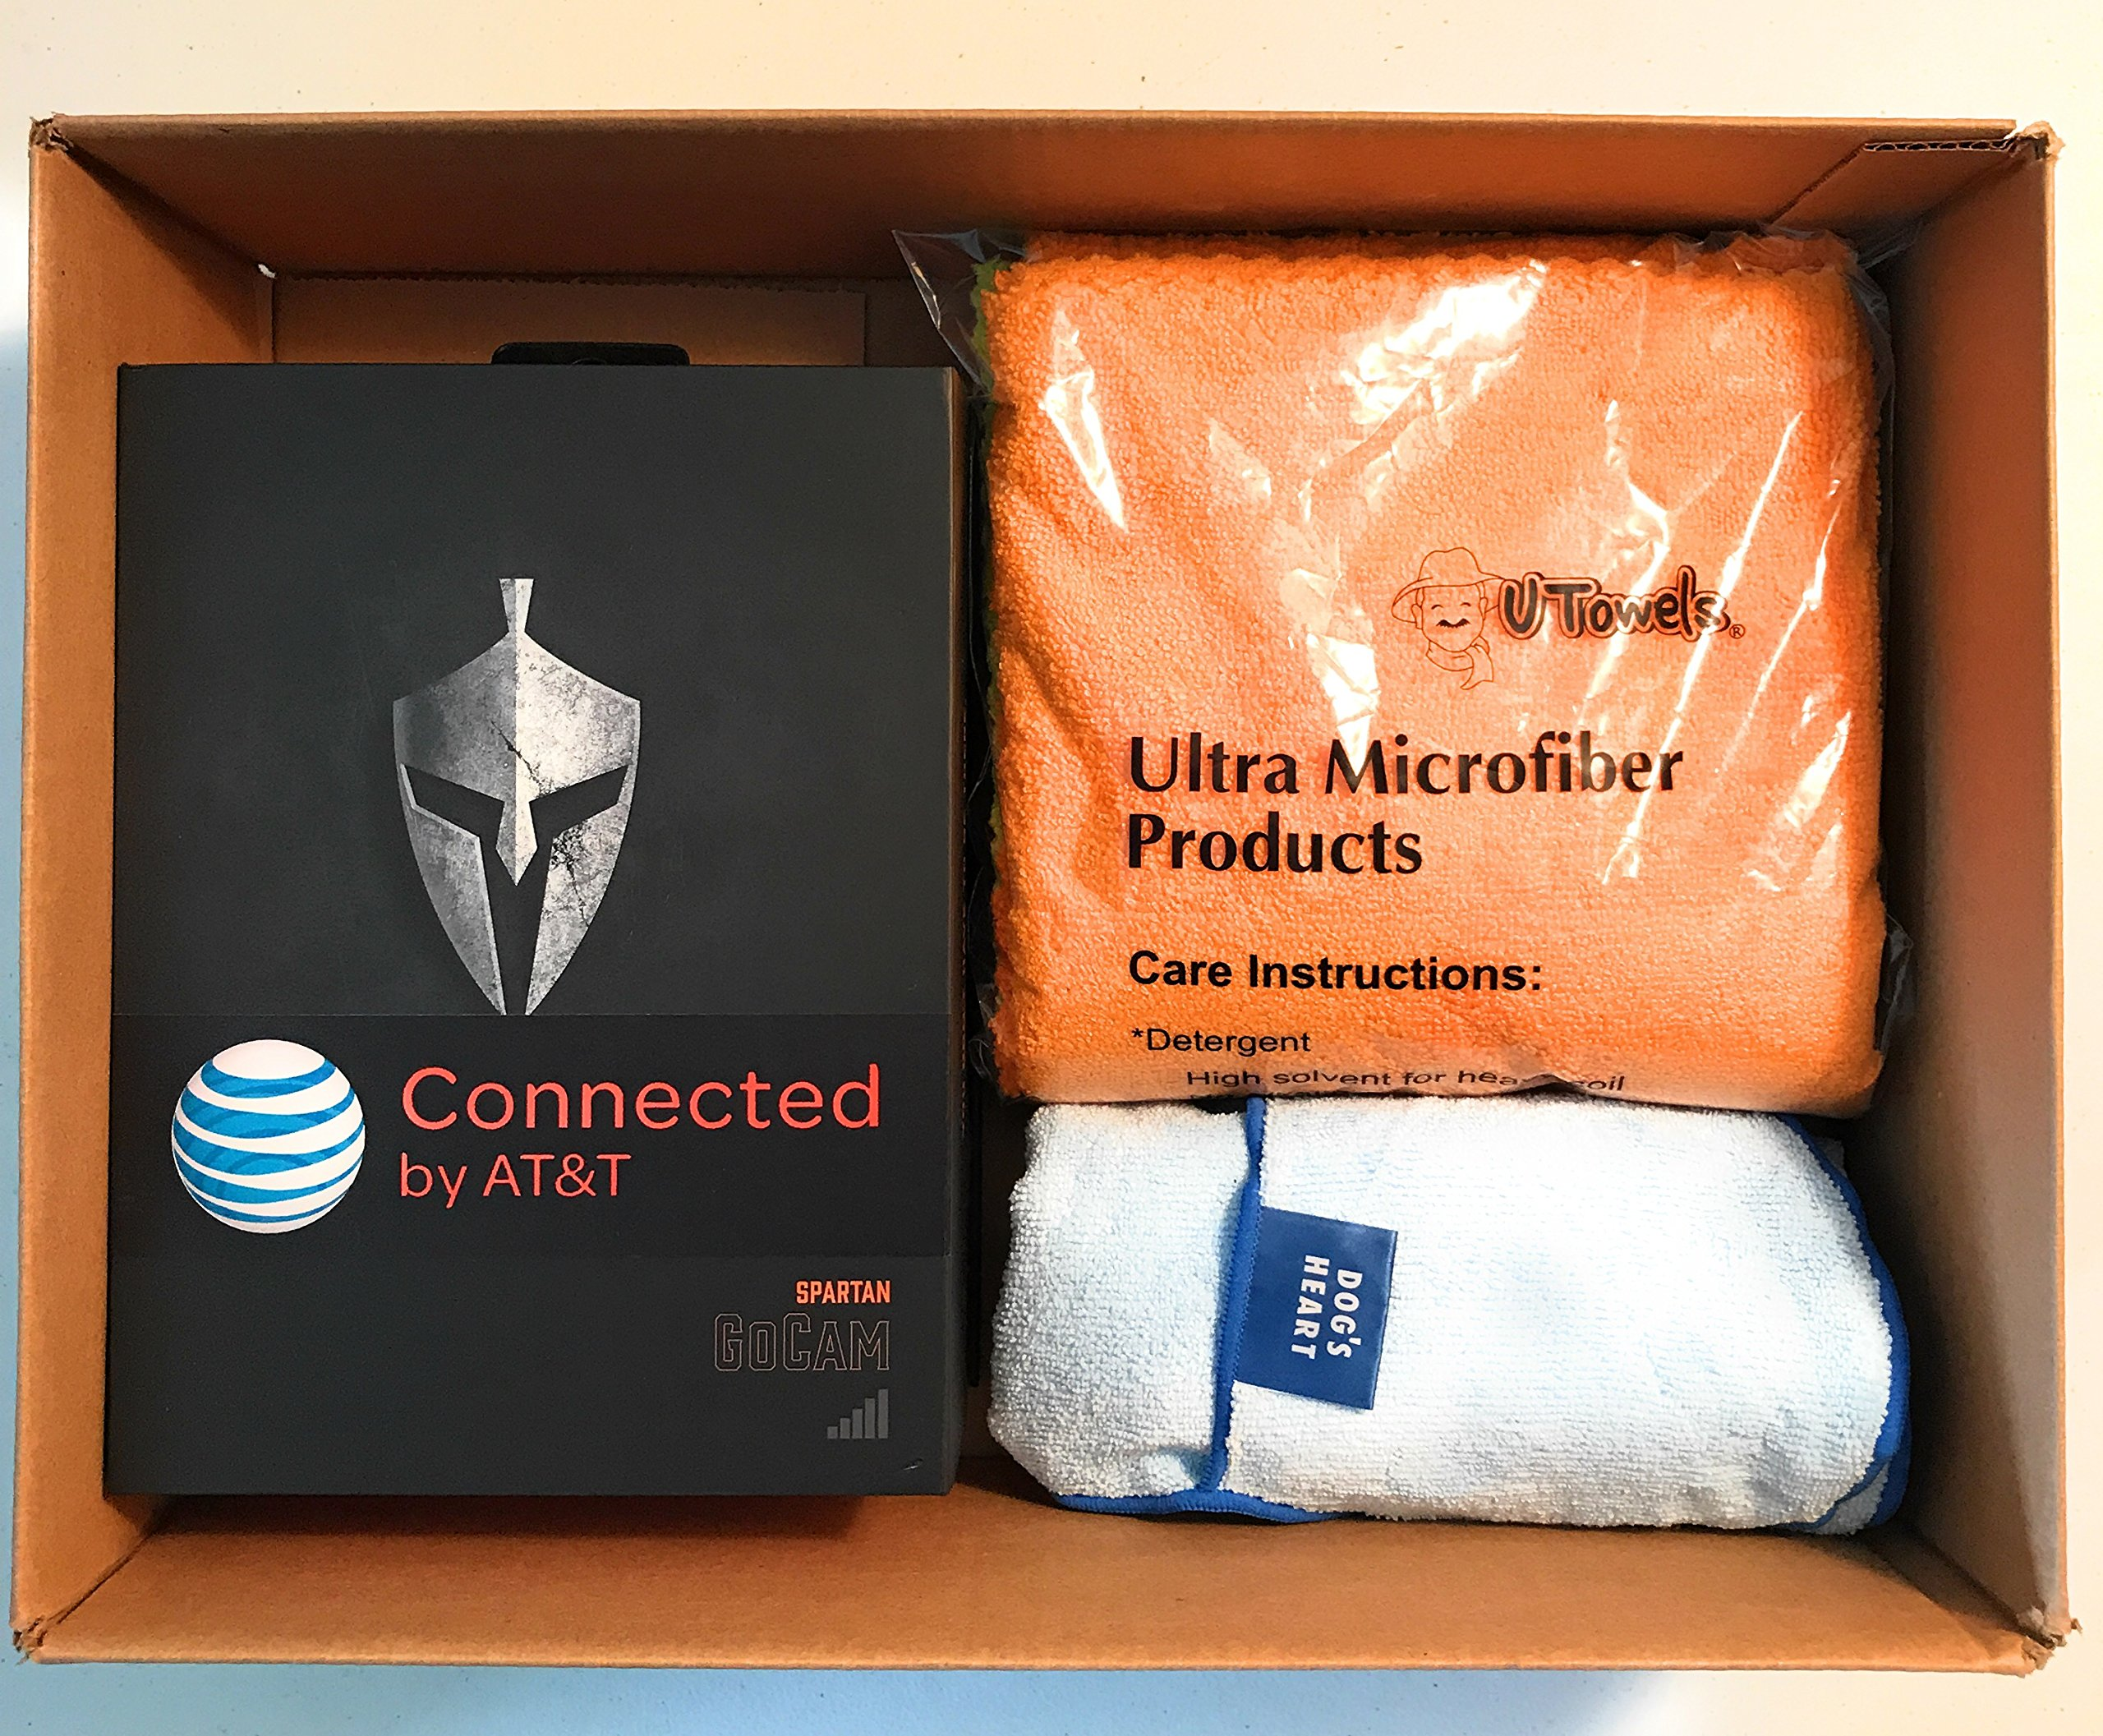 Spartan HD GoCam (AT&T Version, Model#GC-ATTxb, Blackout Infrared) 3G Wireless UTowel Bundle DEAL Bundled with UTowels Edgeless Microfiber Towels by Spartan (Image #2)